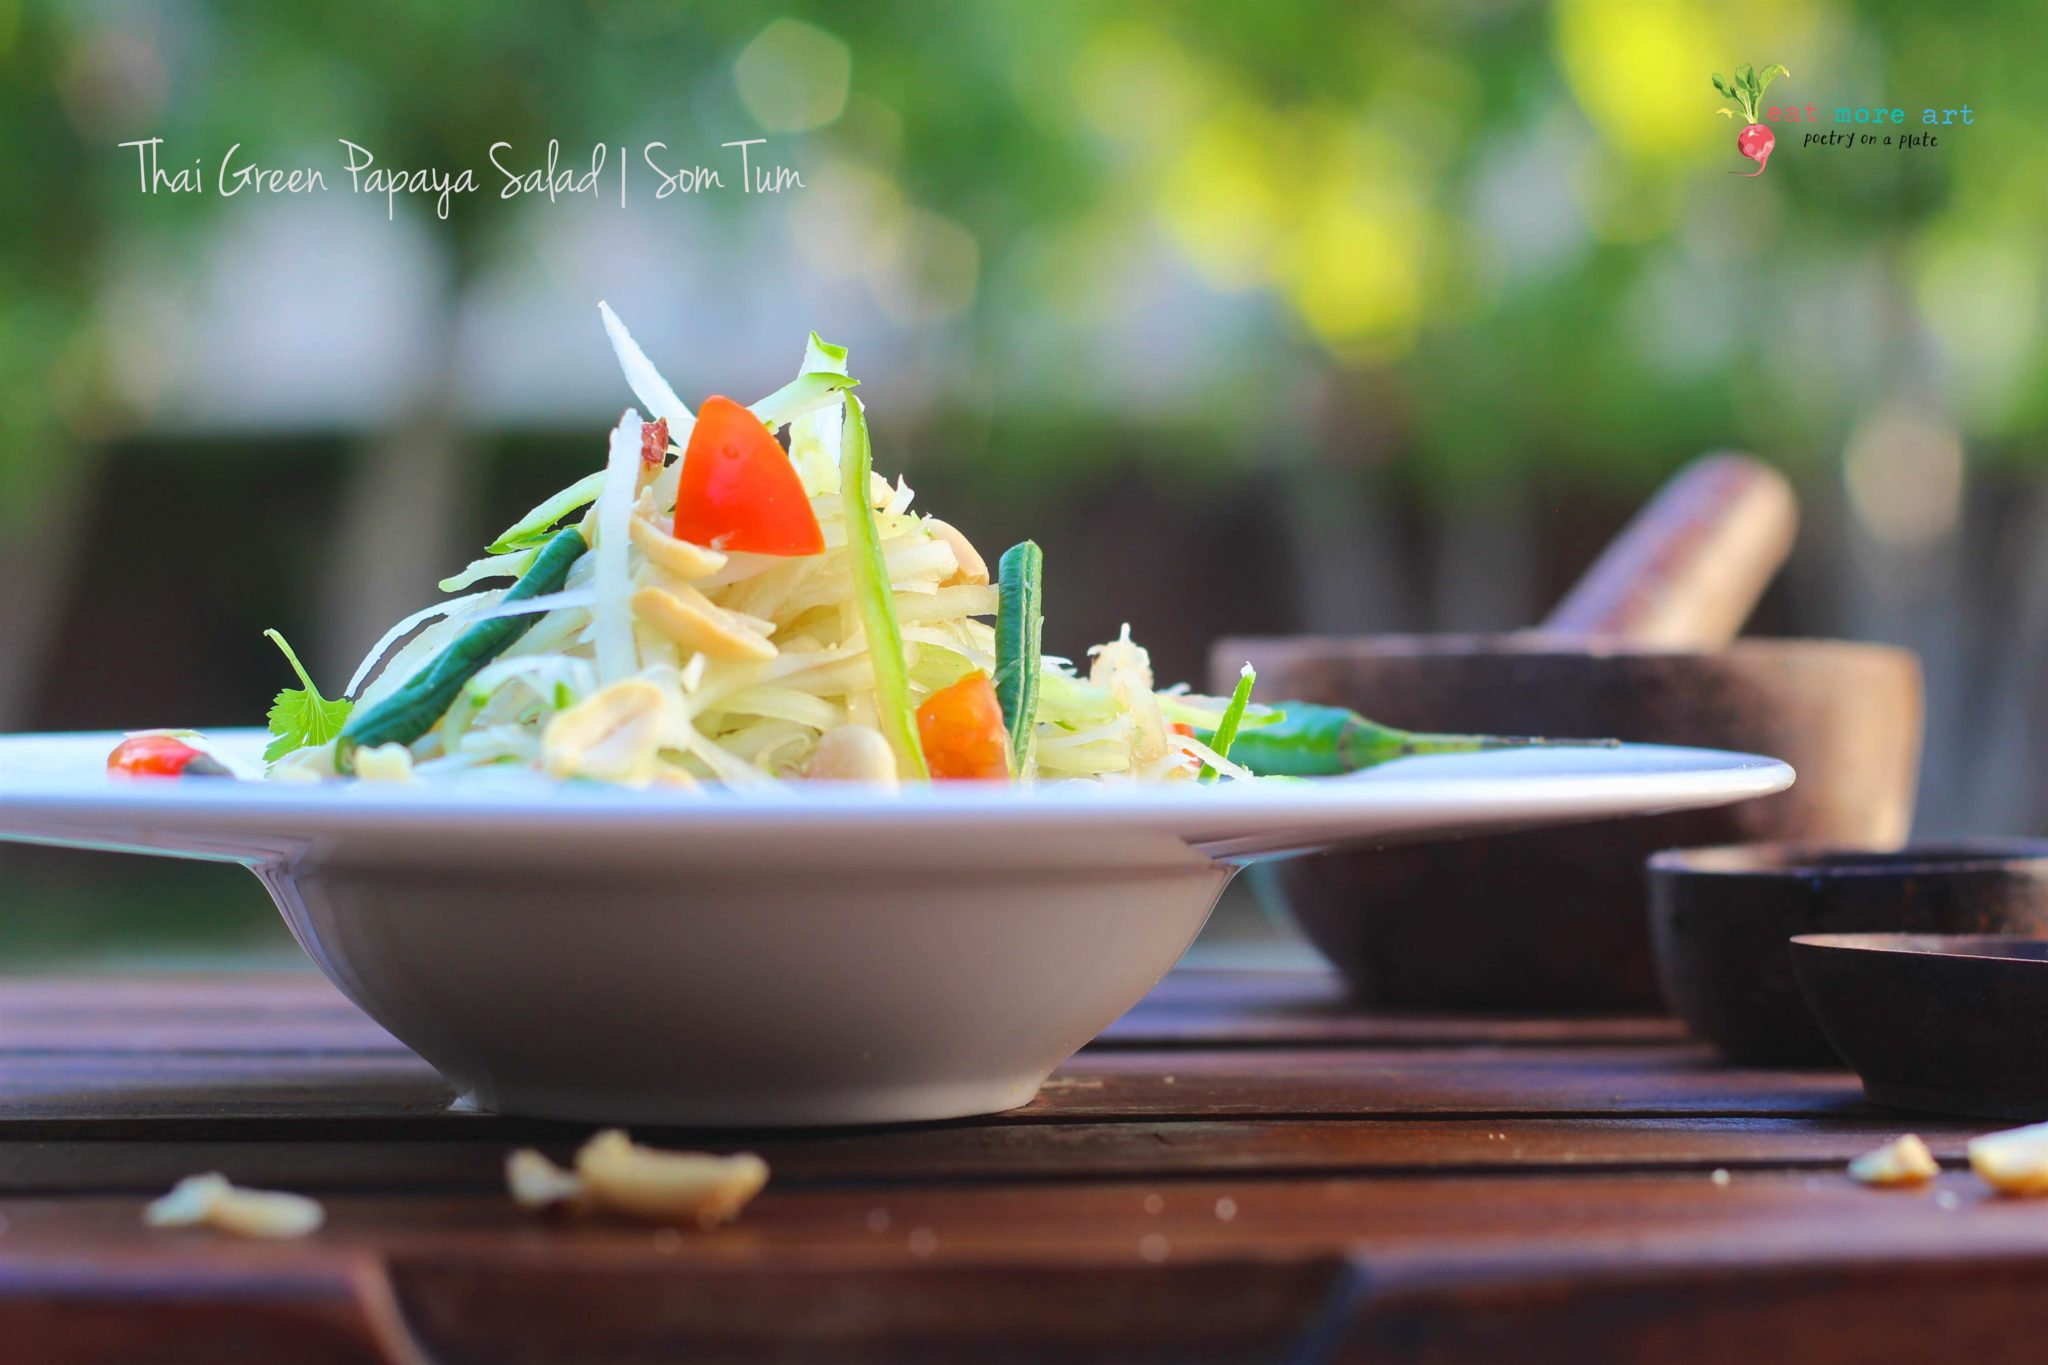 A side shot of Thai green papaya salad